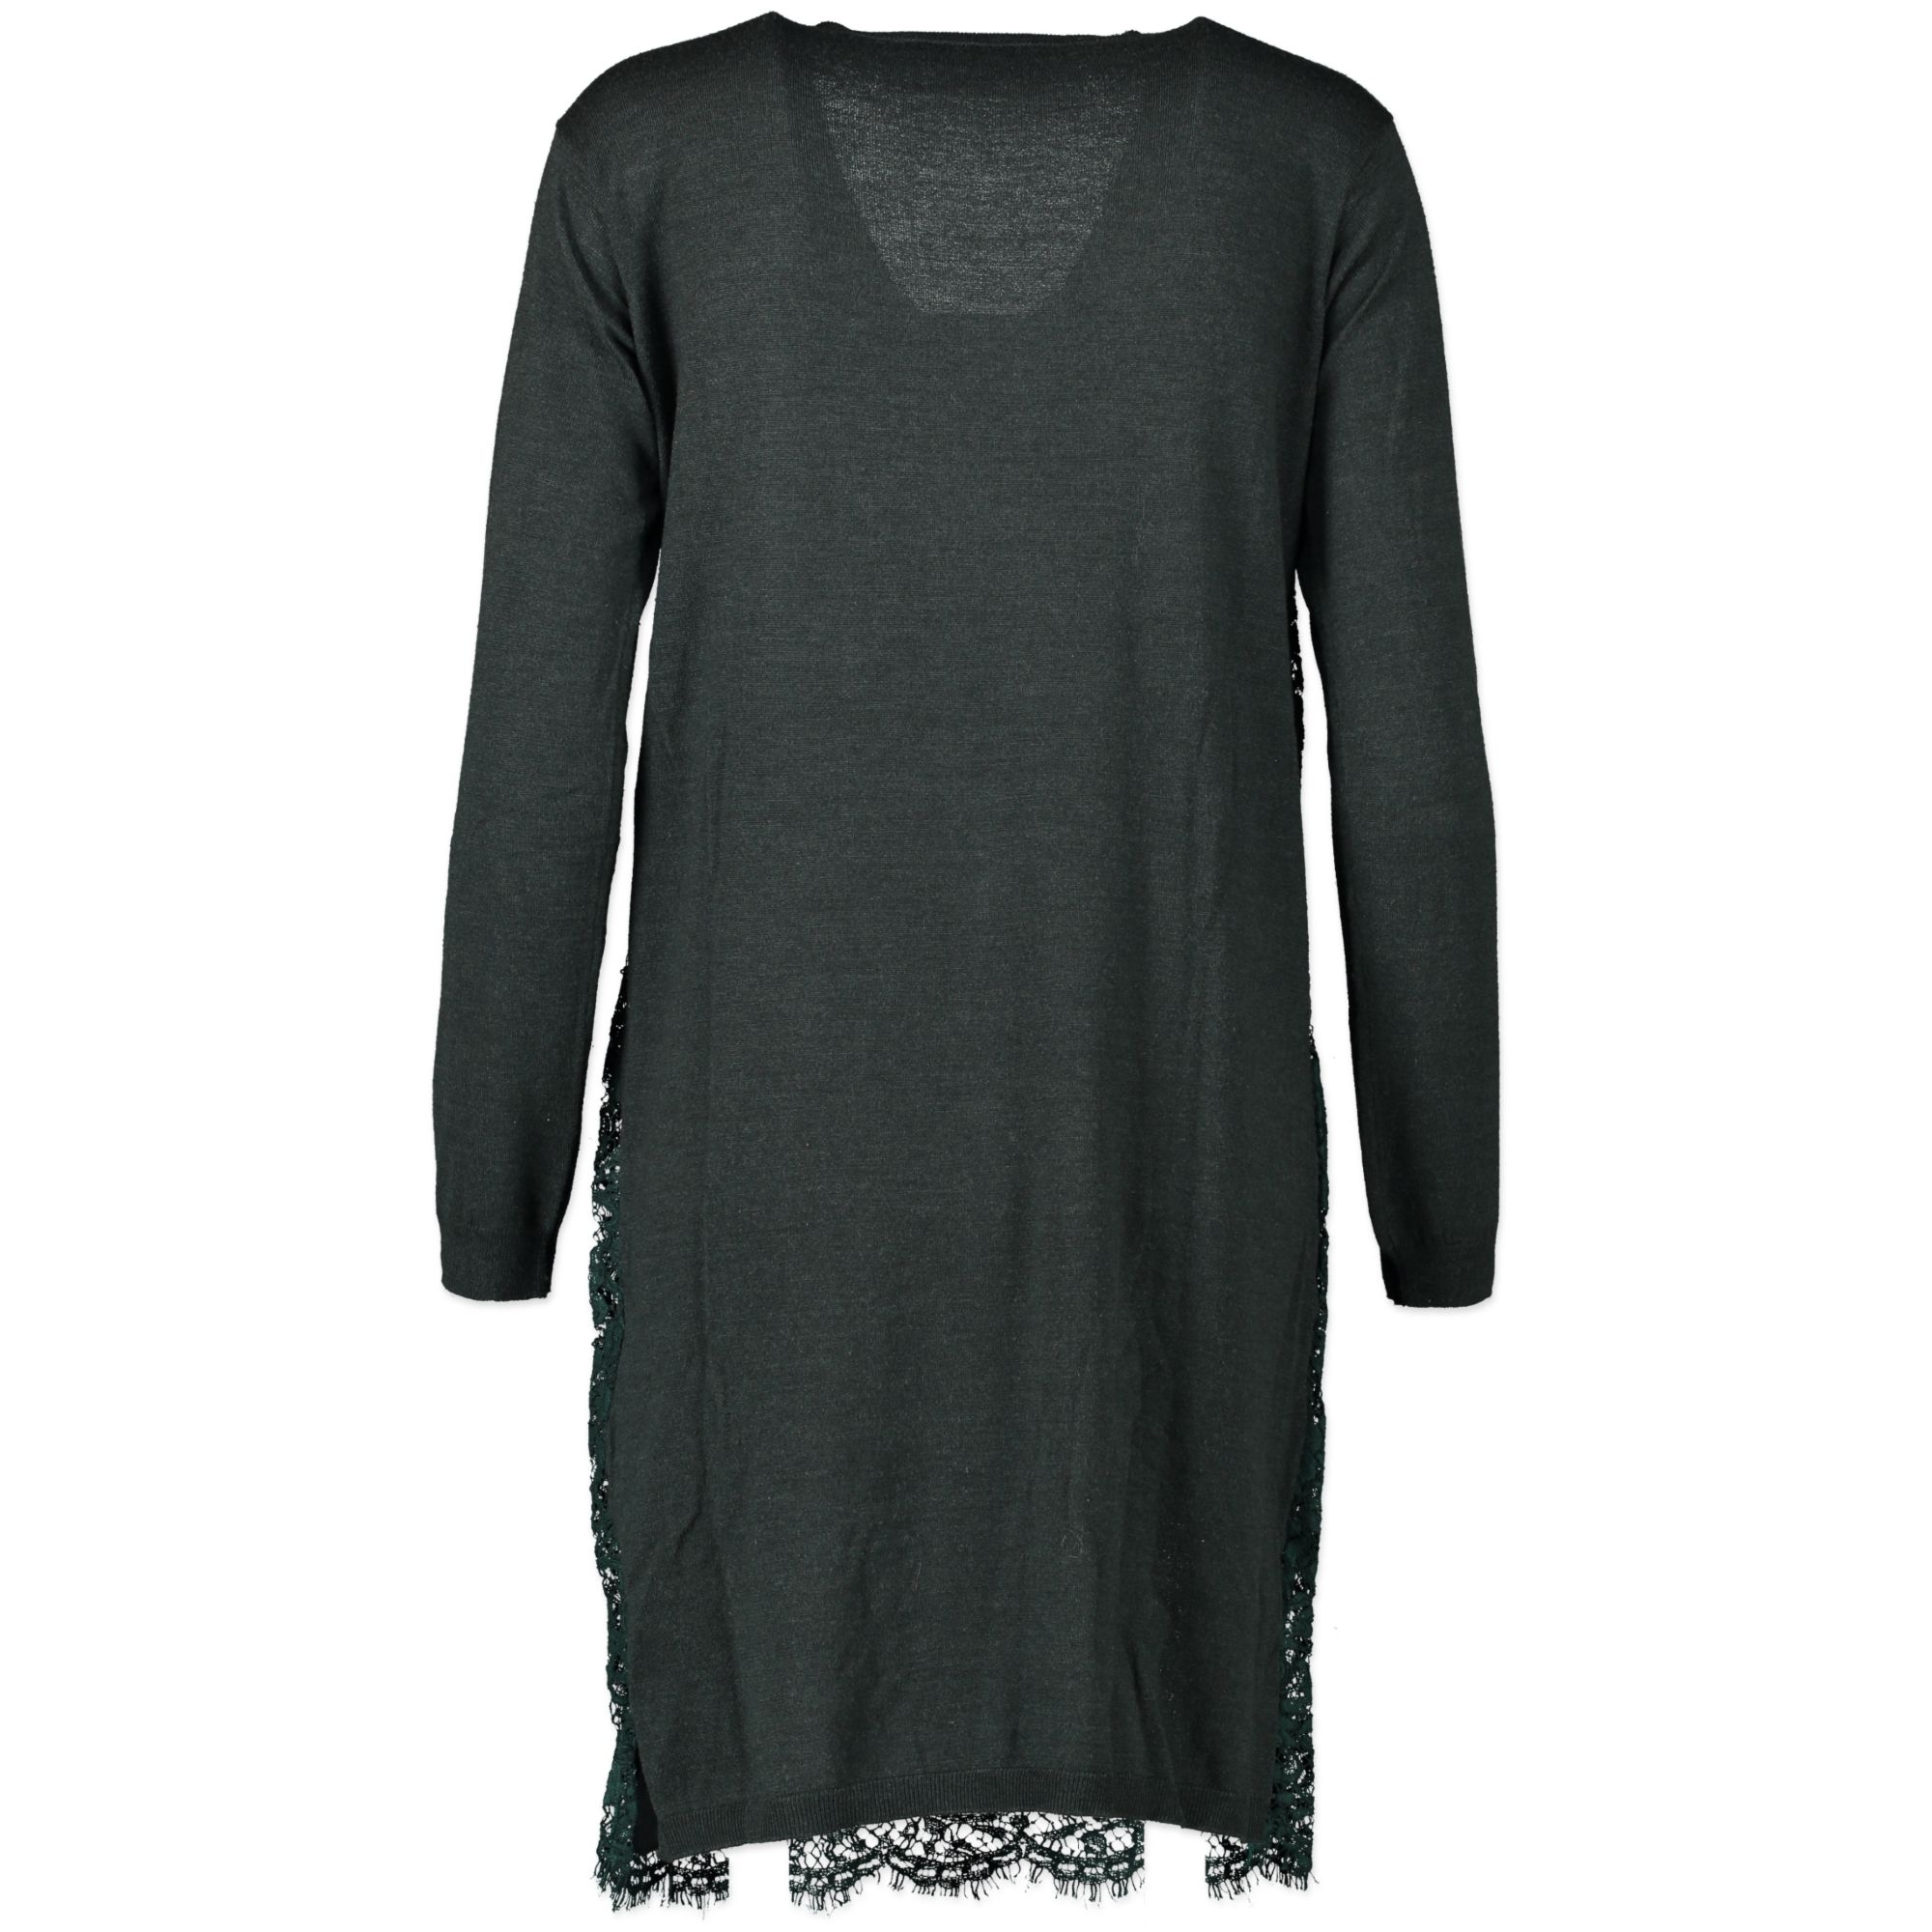 Valentino Green V-neck Lace Dress - size XS